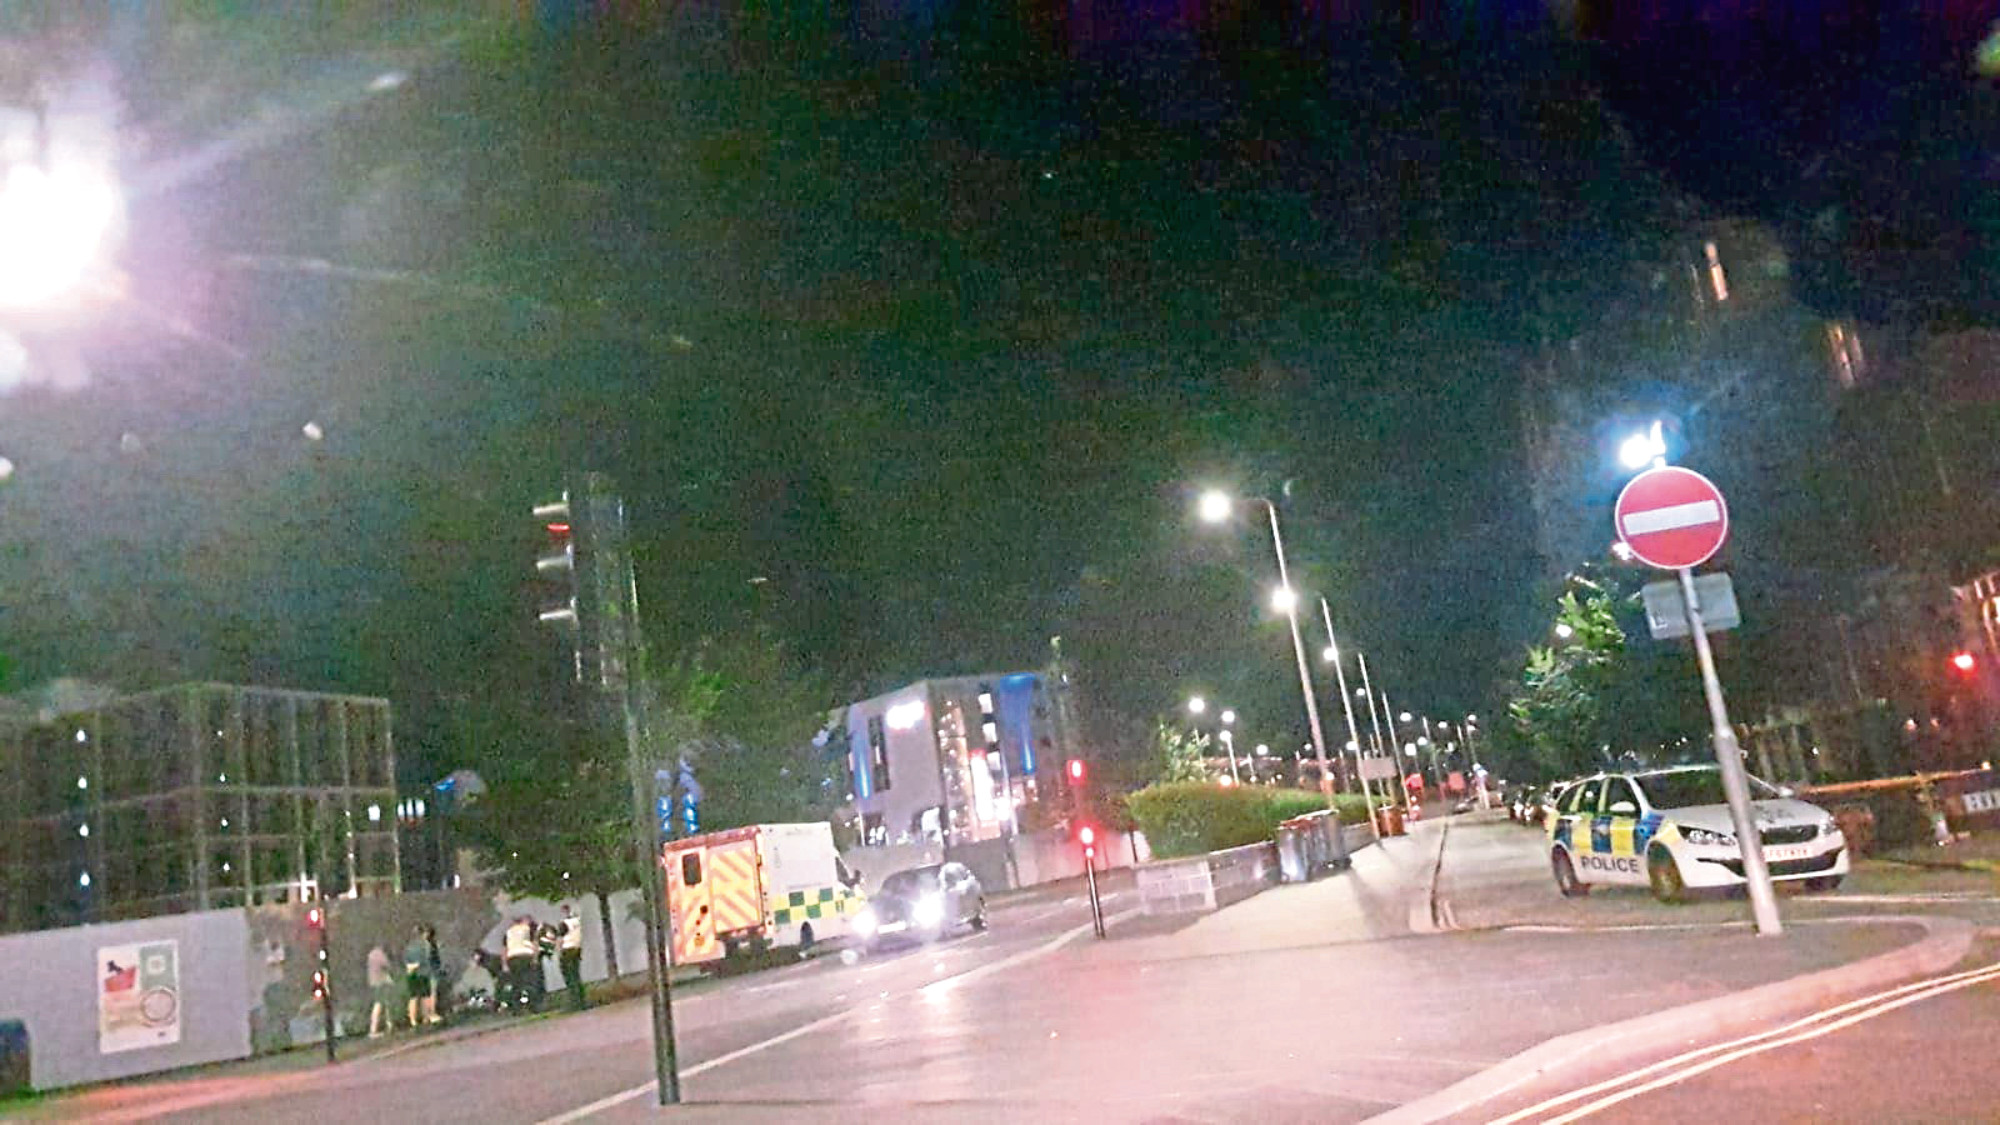 Emergency services at the incident.